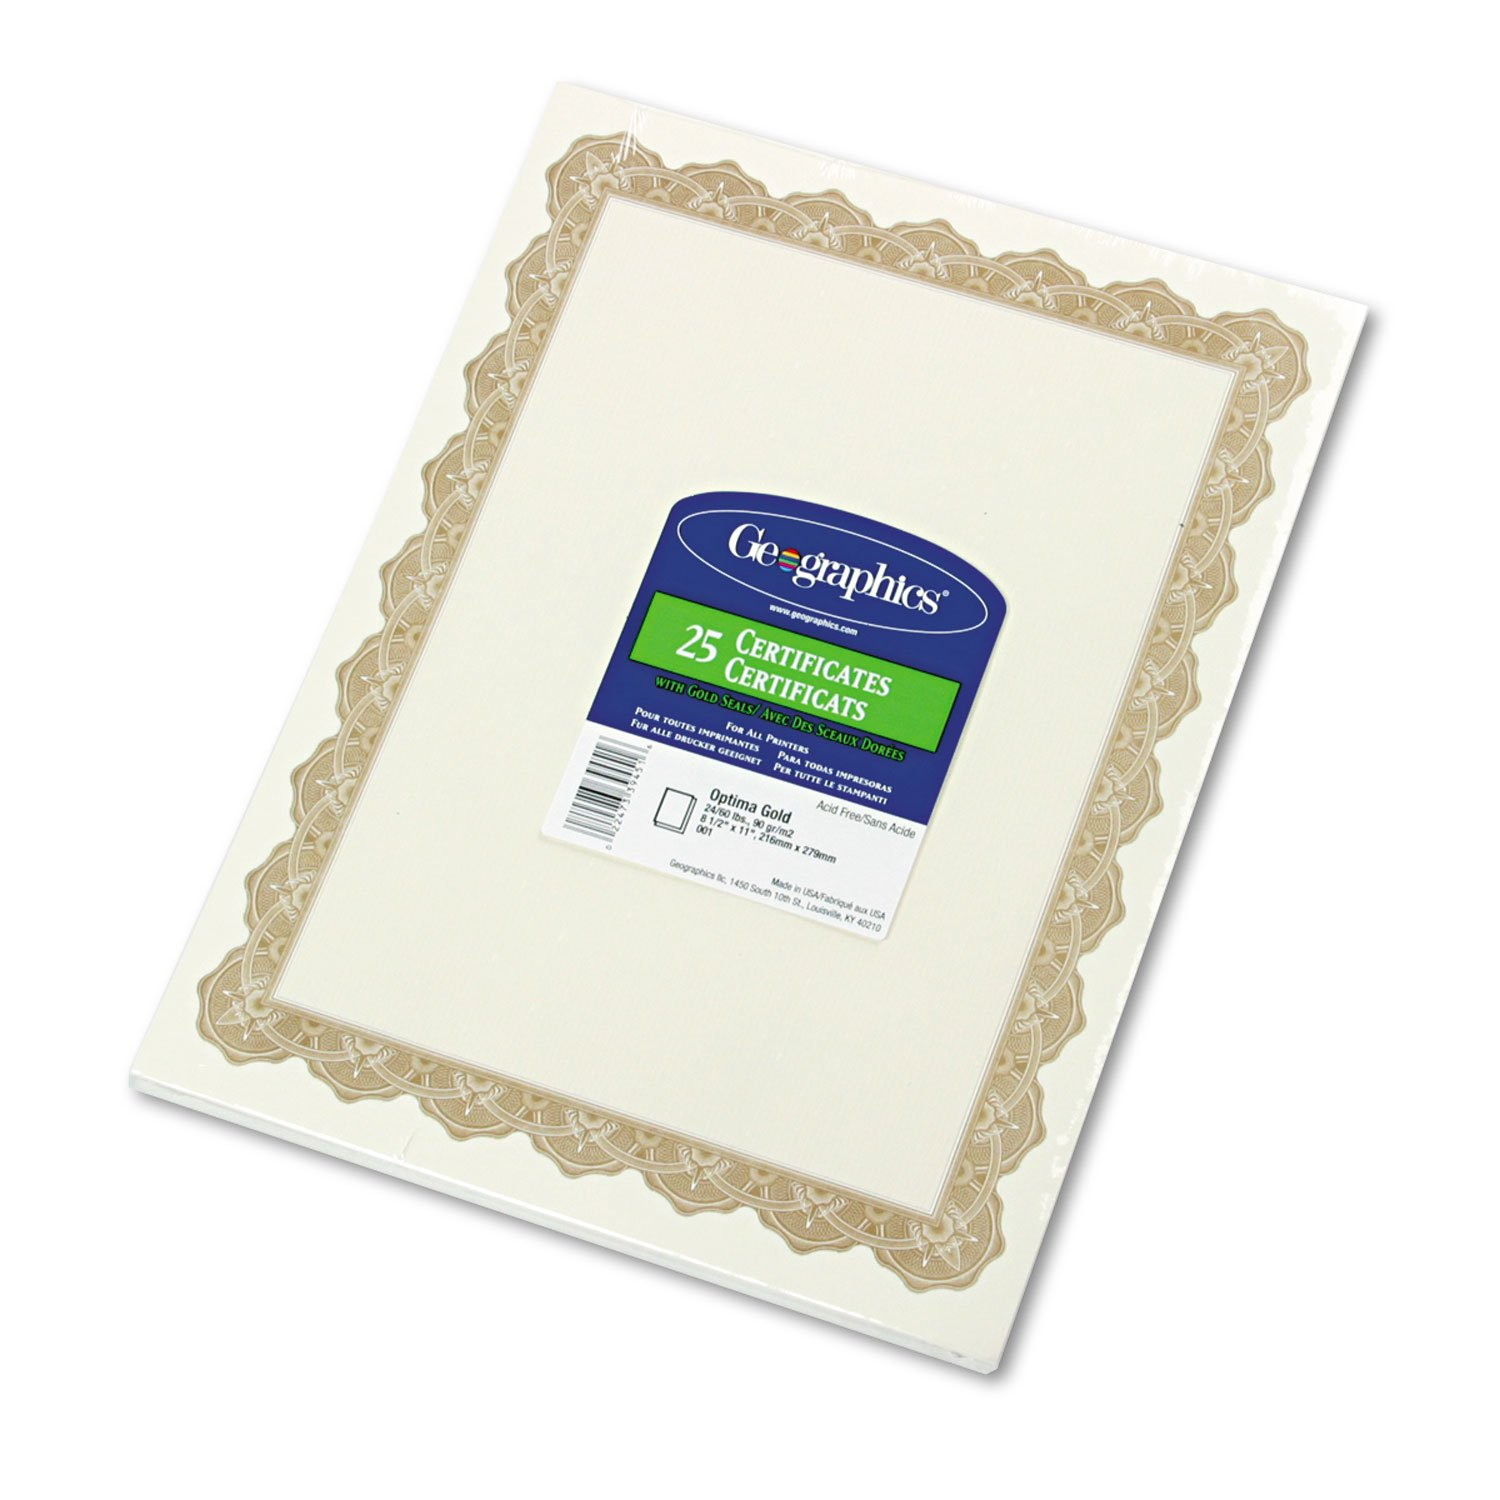 B00006IDX6 Geographics Optima Gold Certificates with Foil Seals, 8.5 x 11 Inches, White Gold, 25-Sheet Pack (39451) 71qeDfDYFIL